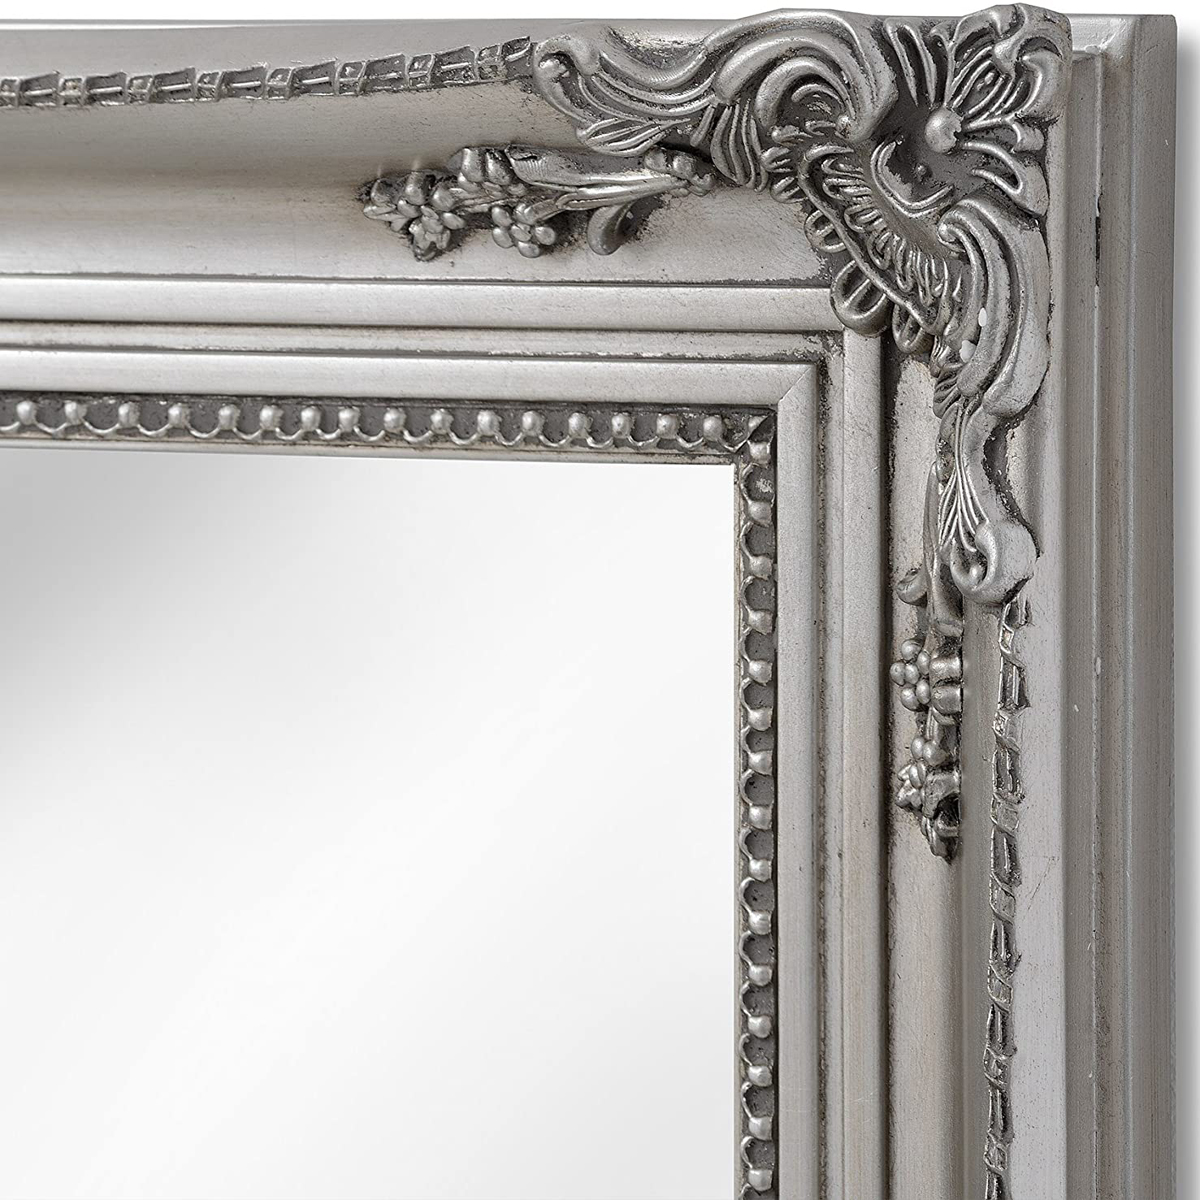 16311 B Large Baroque Ornate Antique Silver Decorative Rectangle Full Length Wall Mirror Interior Flair